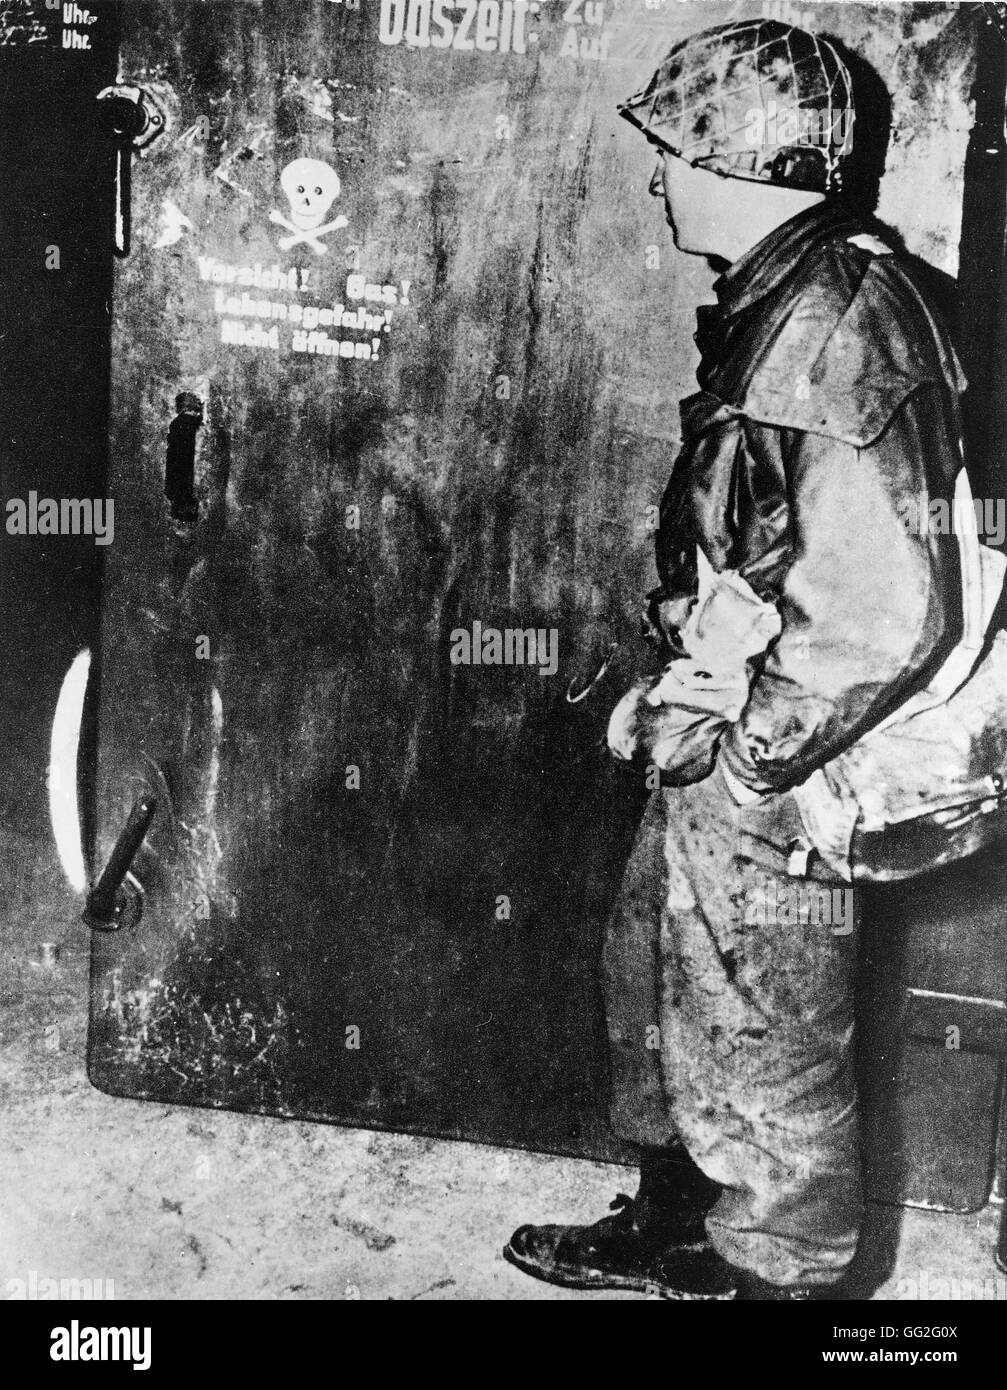 Gas Chamber Black and White Stock Photos & Images - Alamy